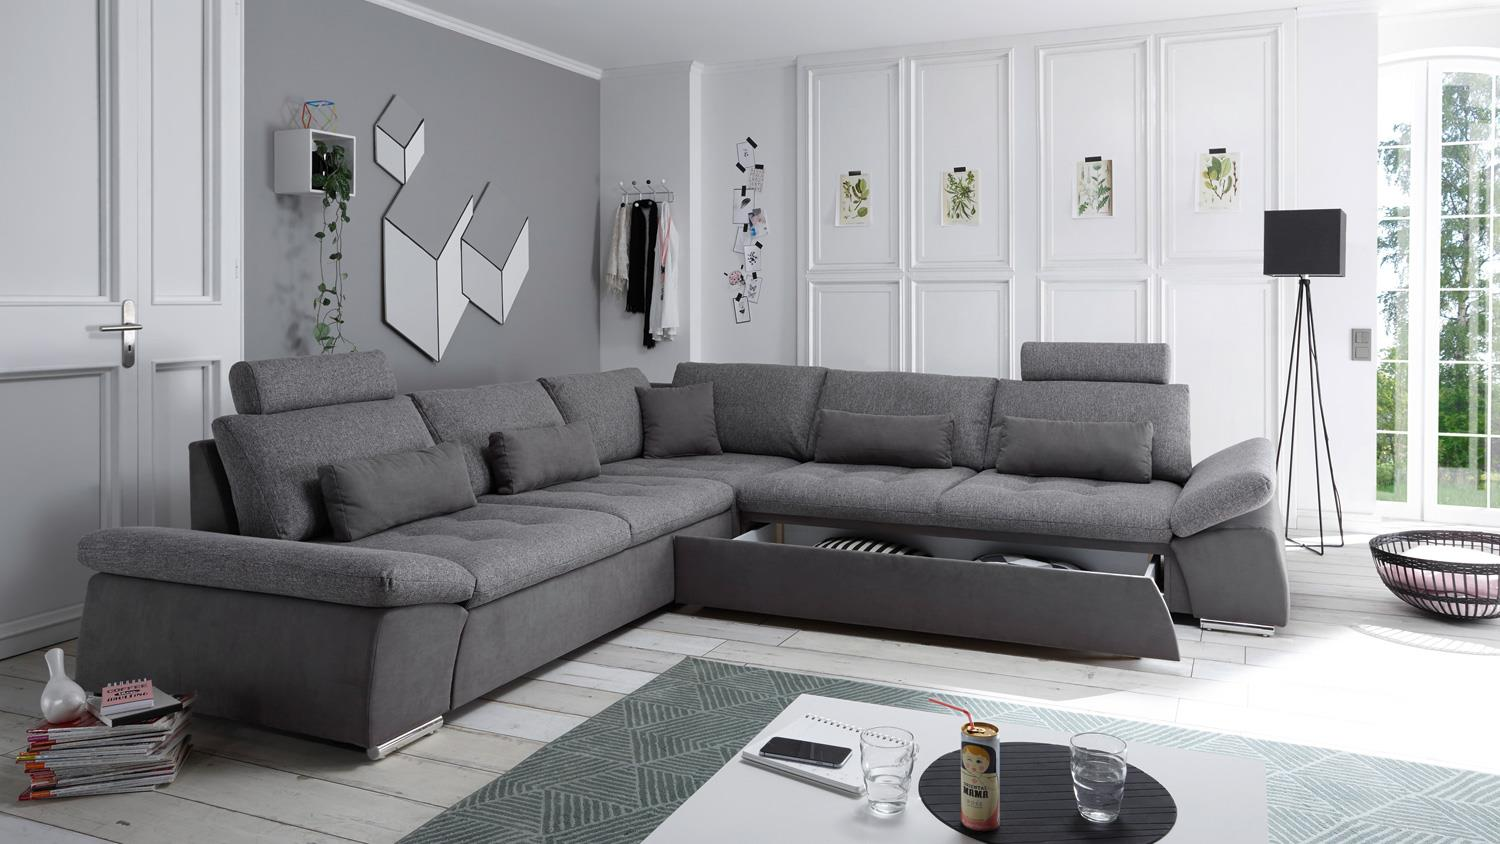 ecksofa lissabon stoff grau nosagfederung schlaffunktion kopfst tzen. Black Bedroom Furniture Sets. Home Design Ideas